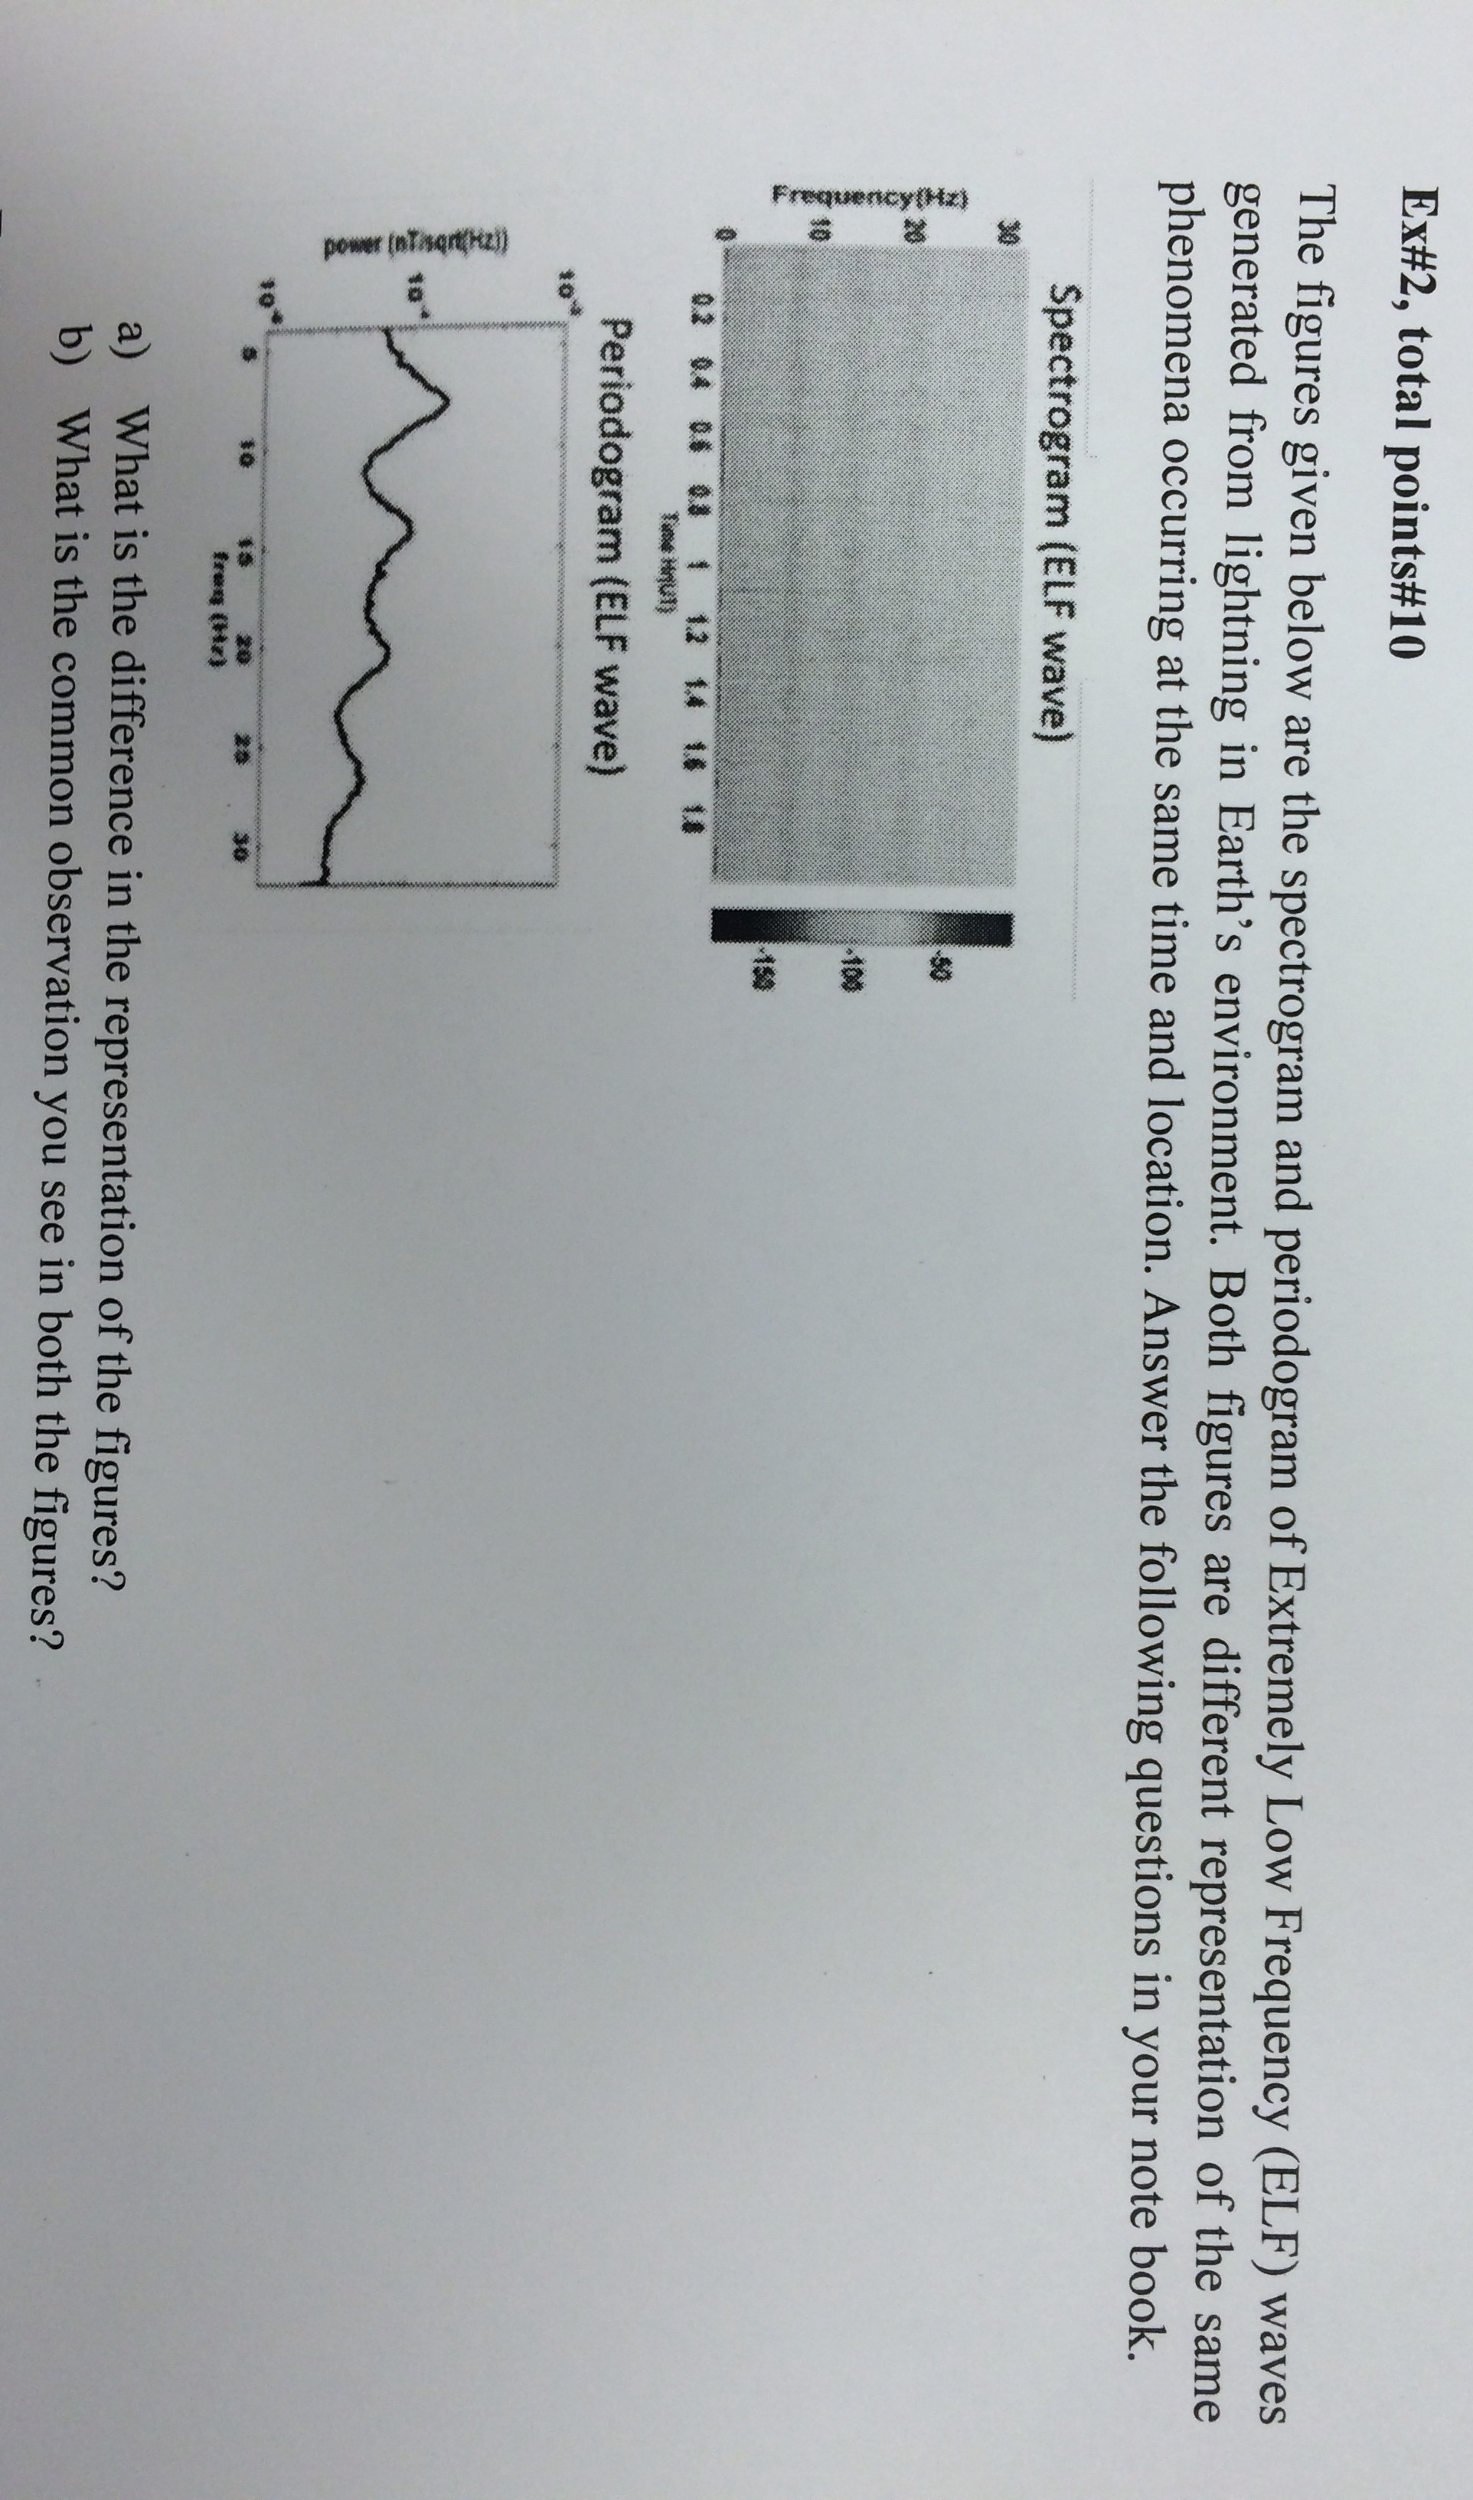 The Figures Given Below Are The Spectrogram And Pe      Chegg com